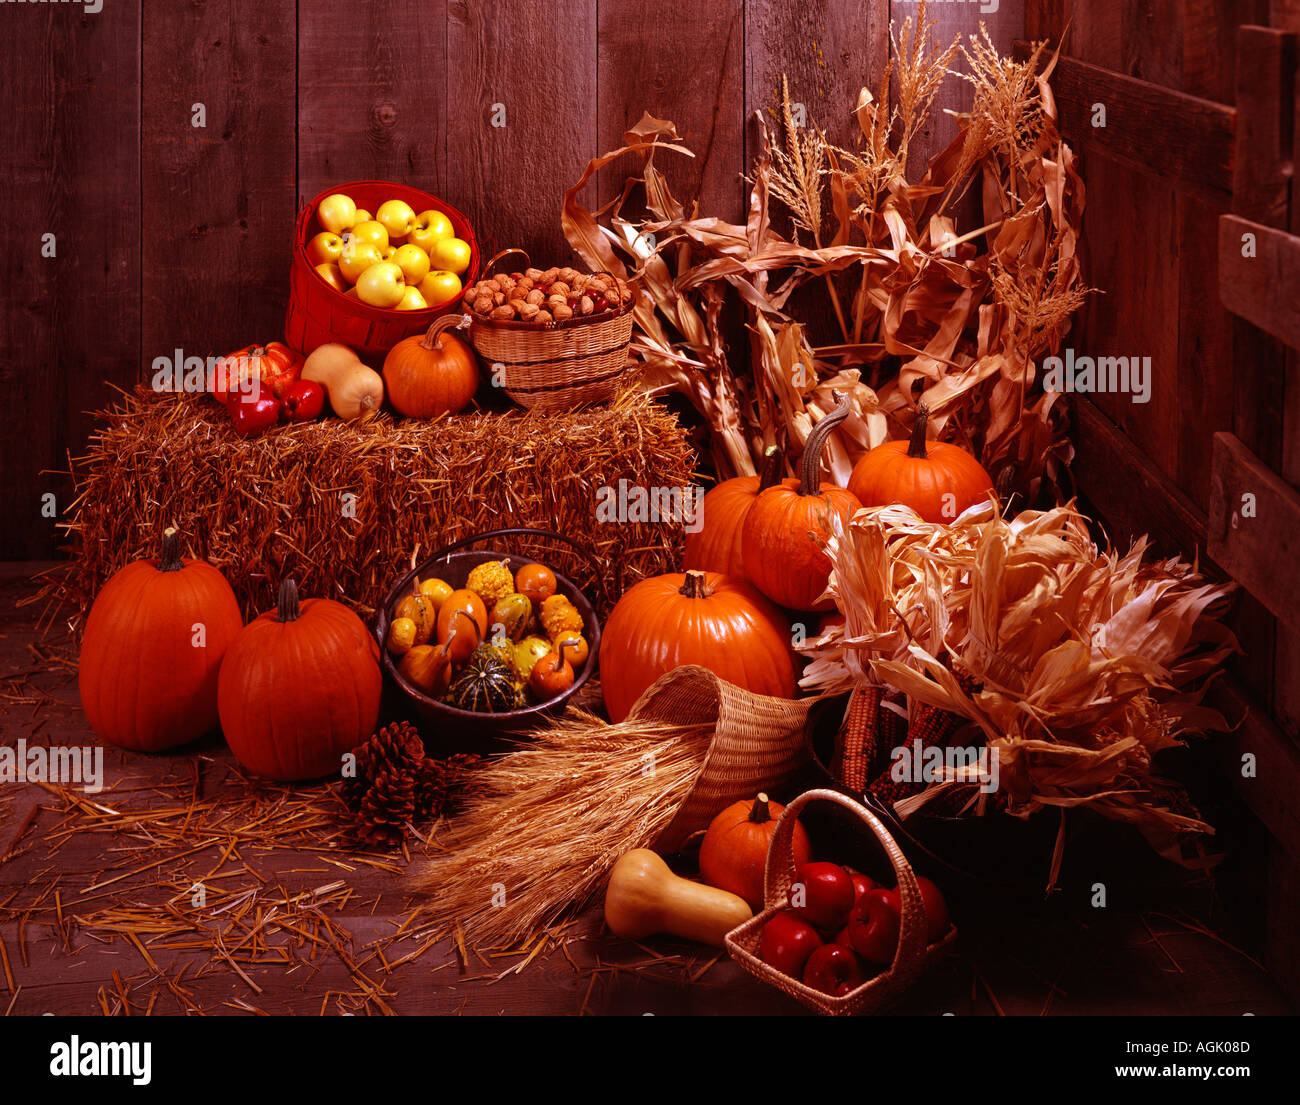 Harvest still life featuring hay bales apples corn straw pumpkins gourds pine cones cornucopia against weathered barnwood - Stock Image